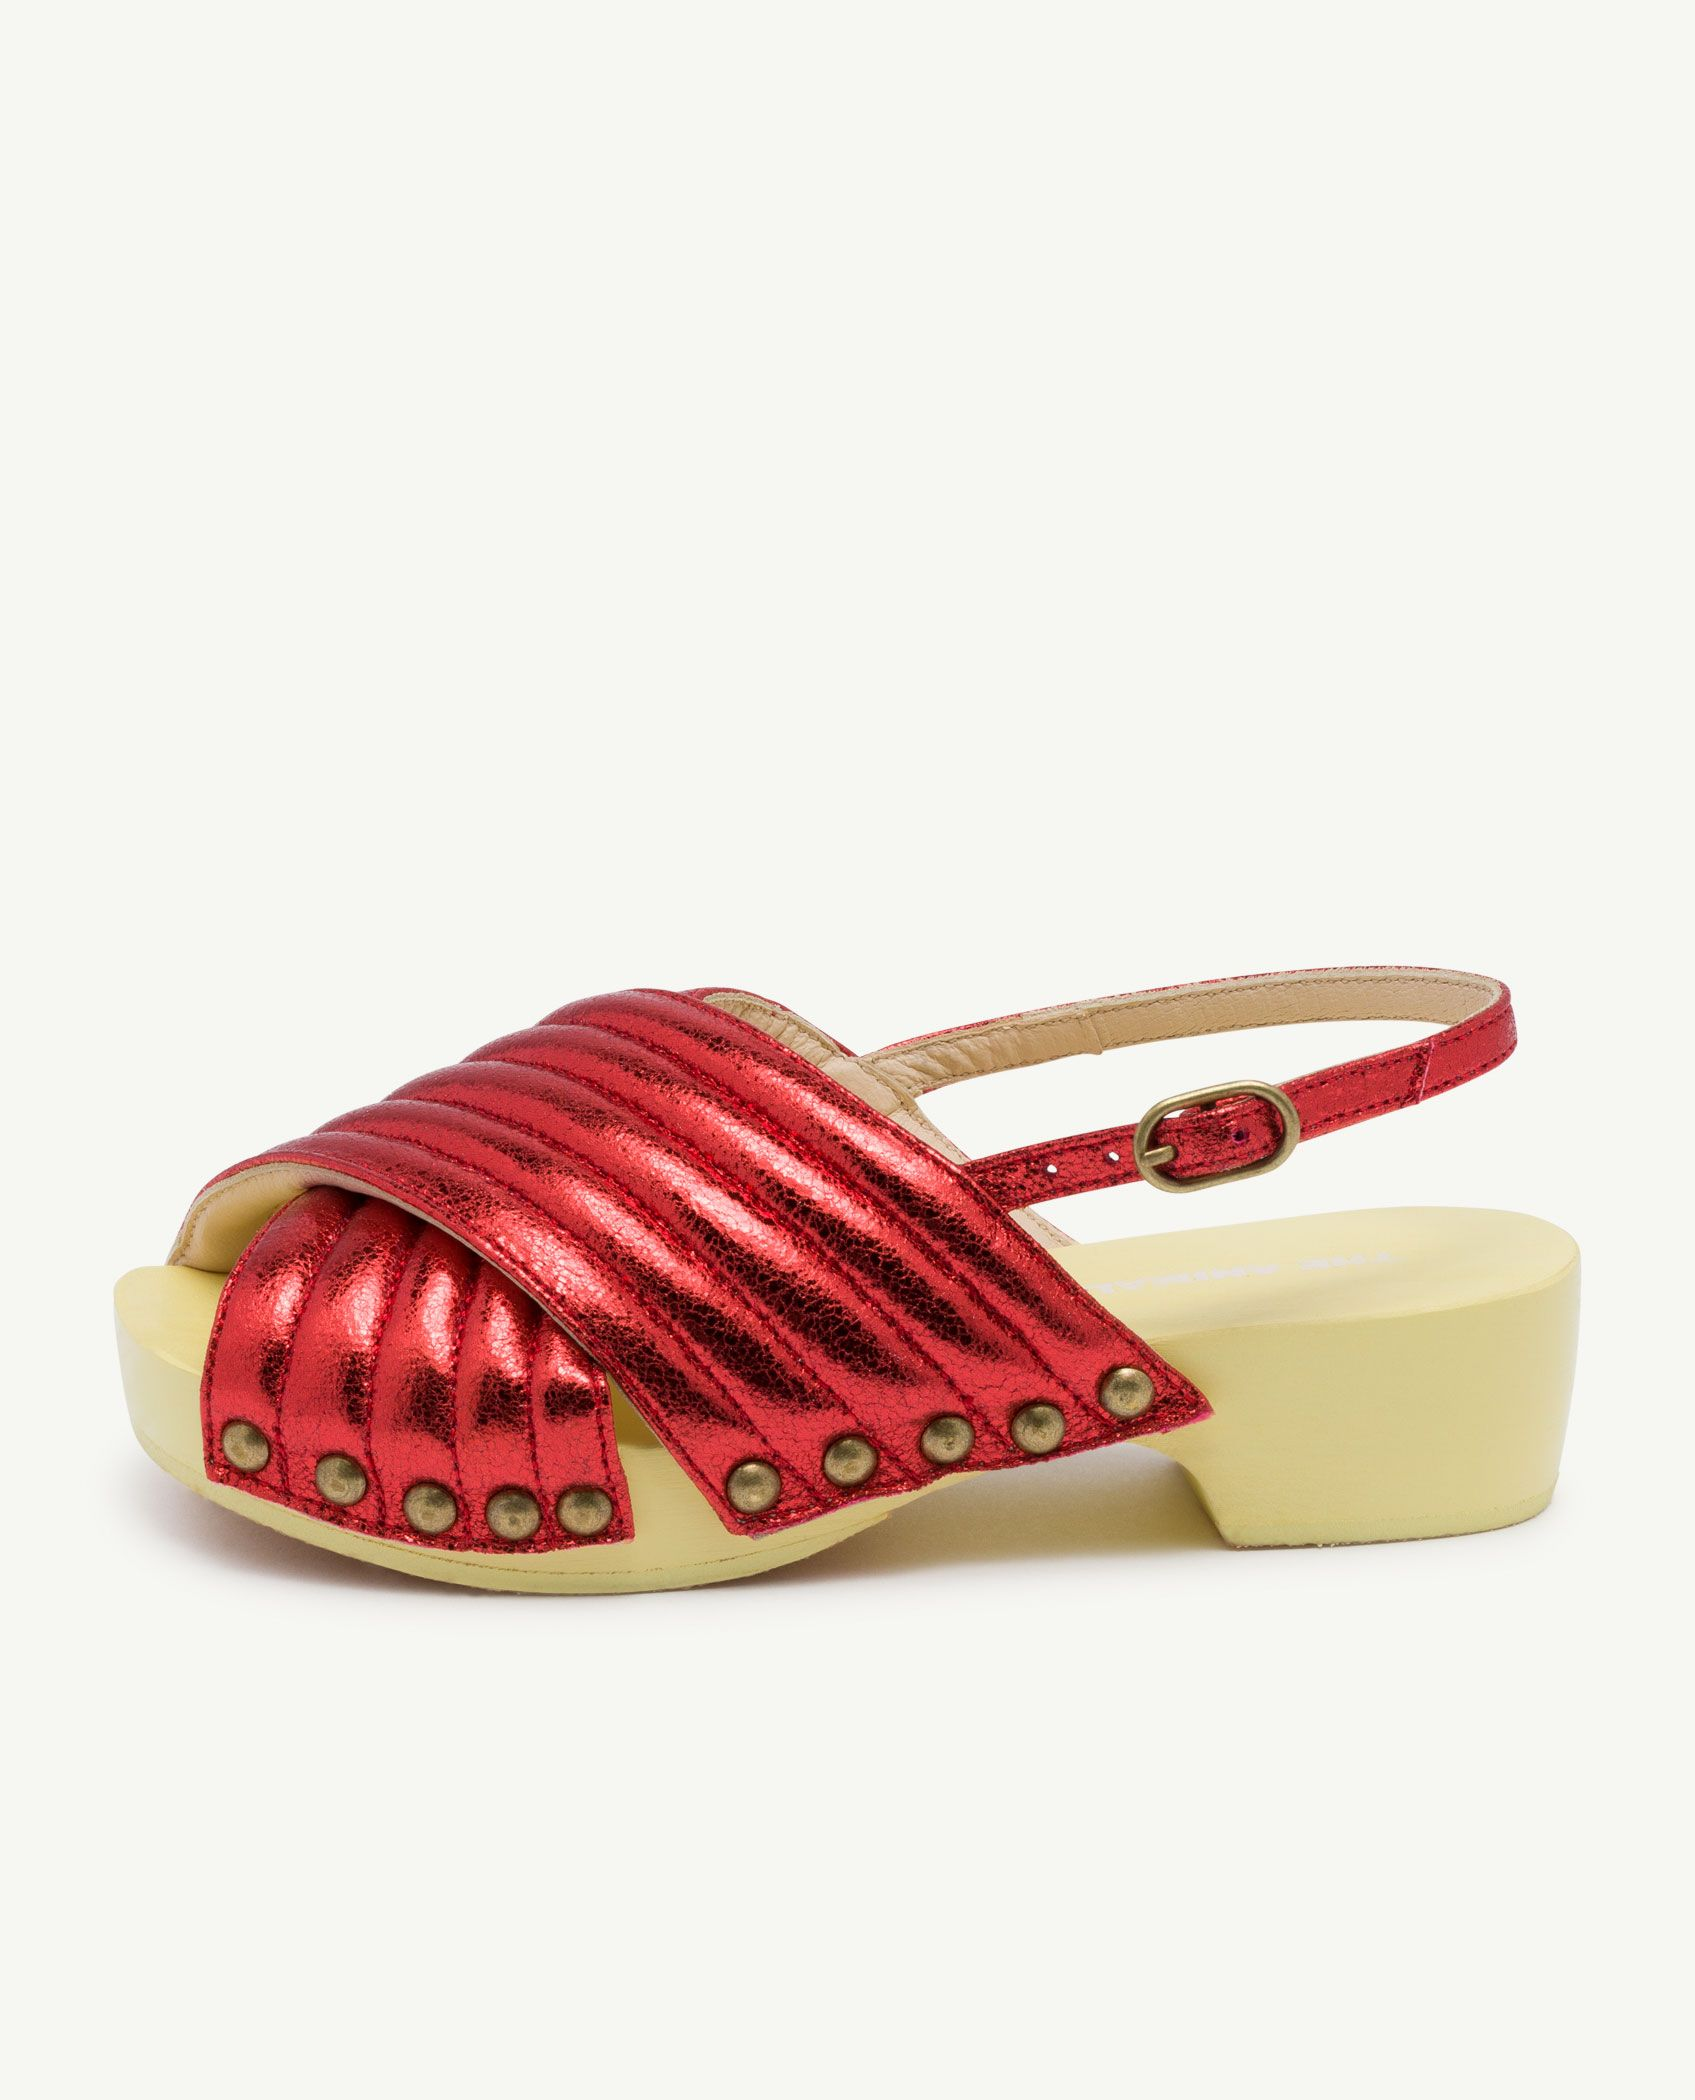 Red Clog Sandals img-1